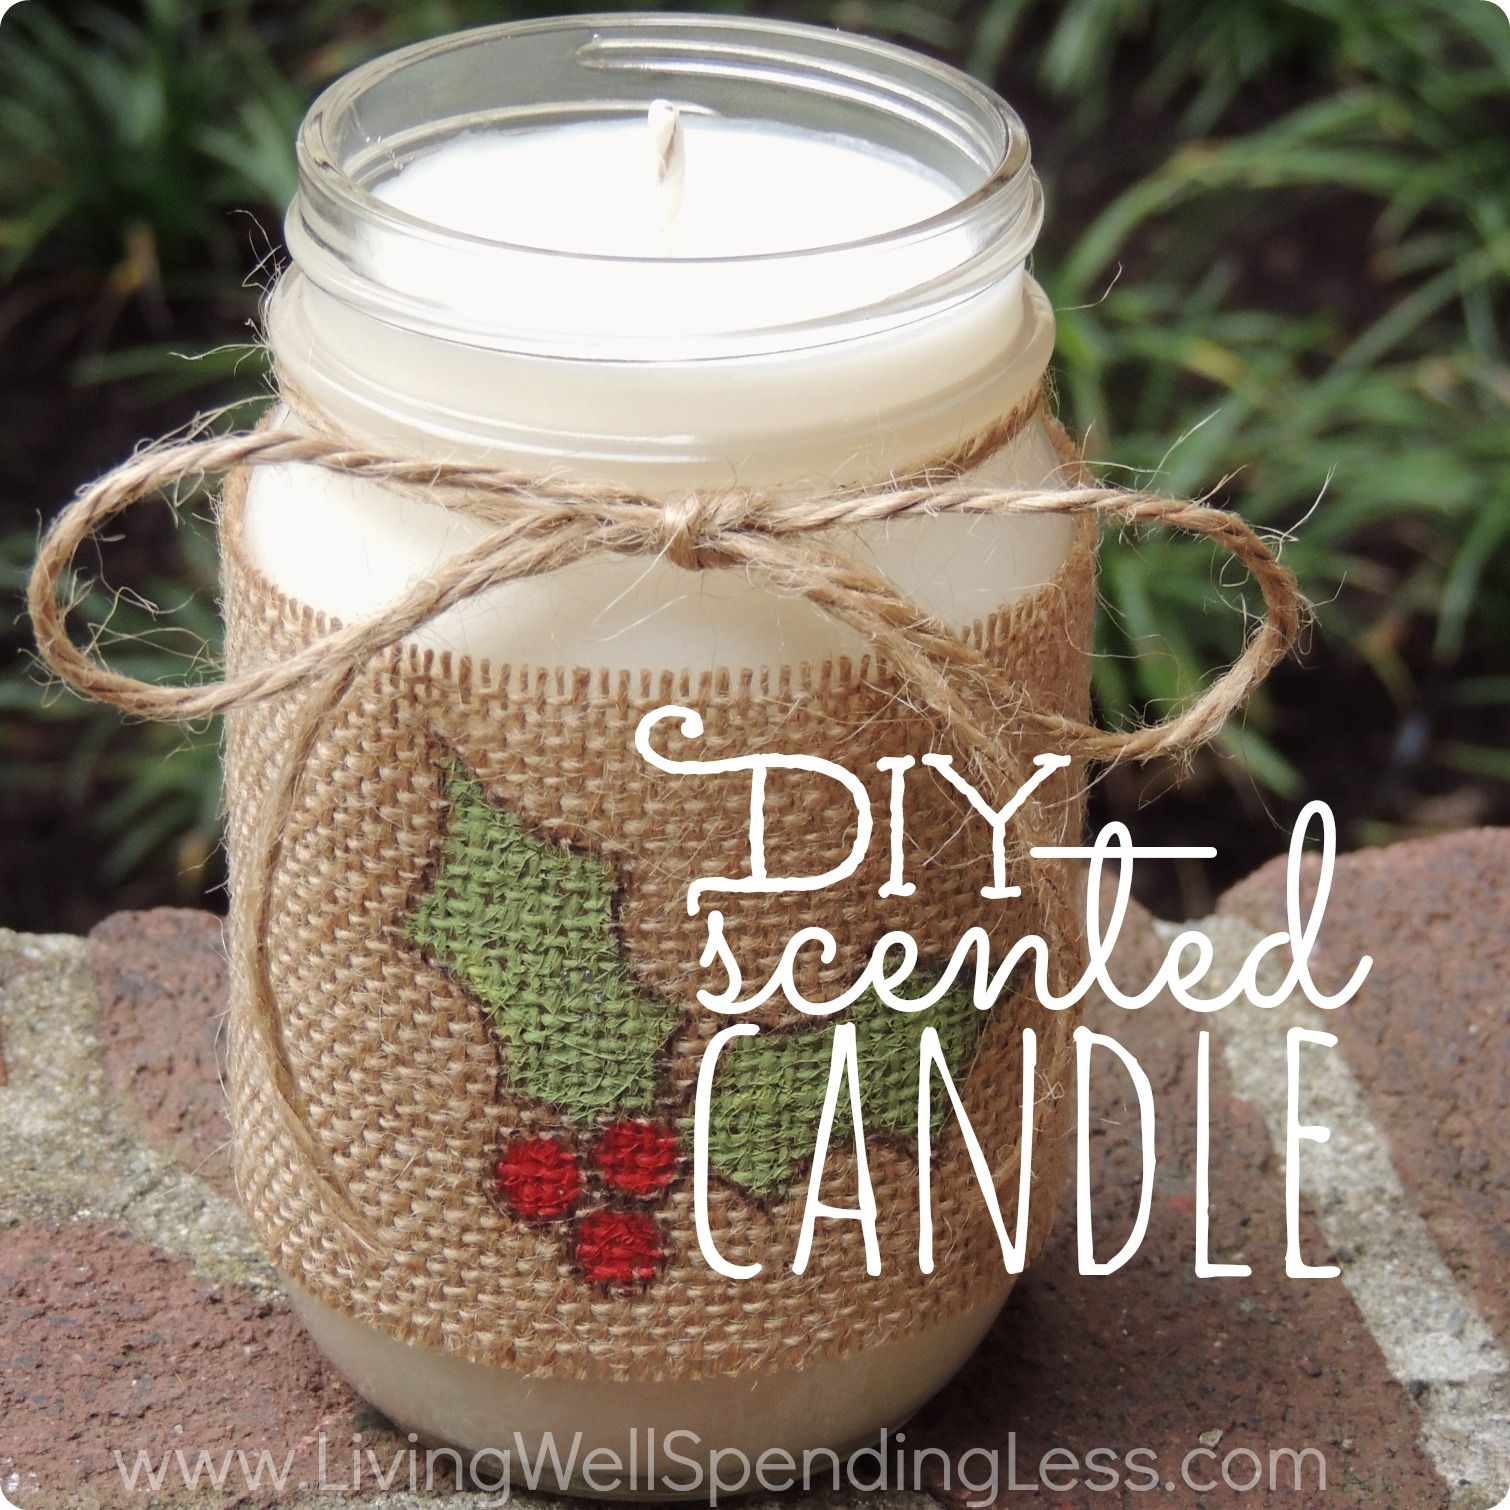 Diy scented candle in a jar living well spending less for Christmas present homemade gift ideas